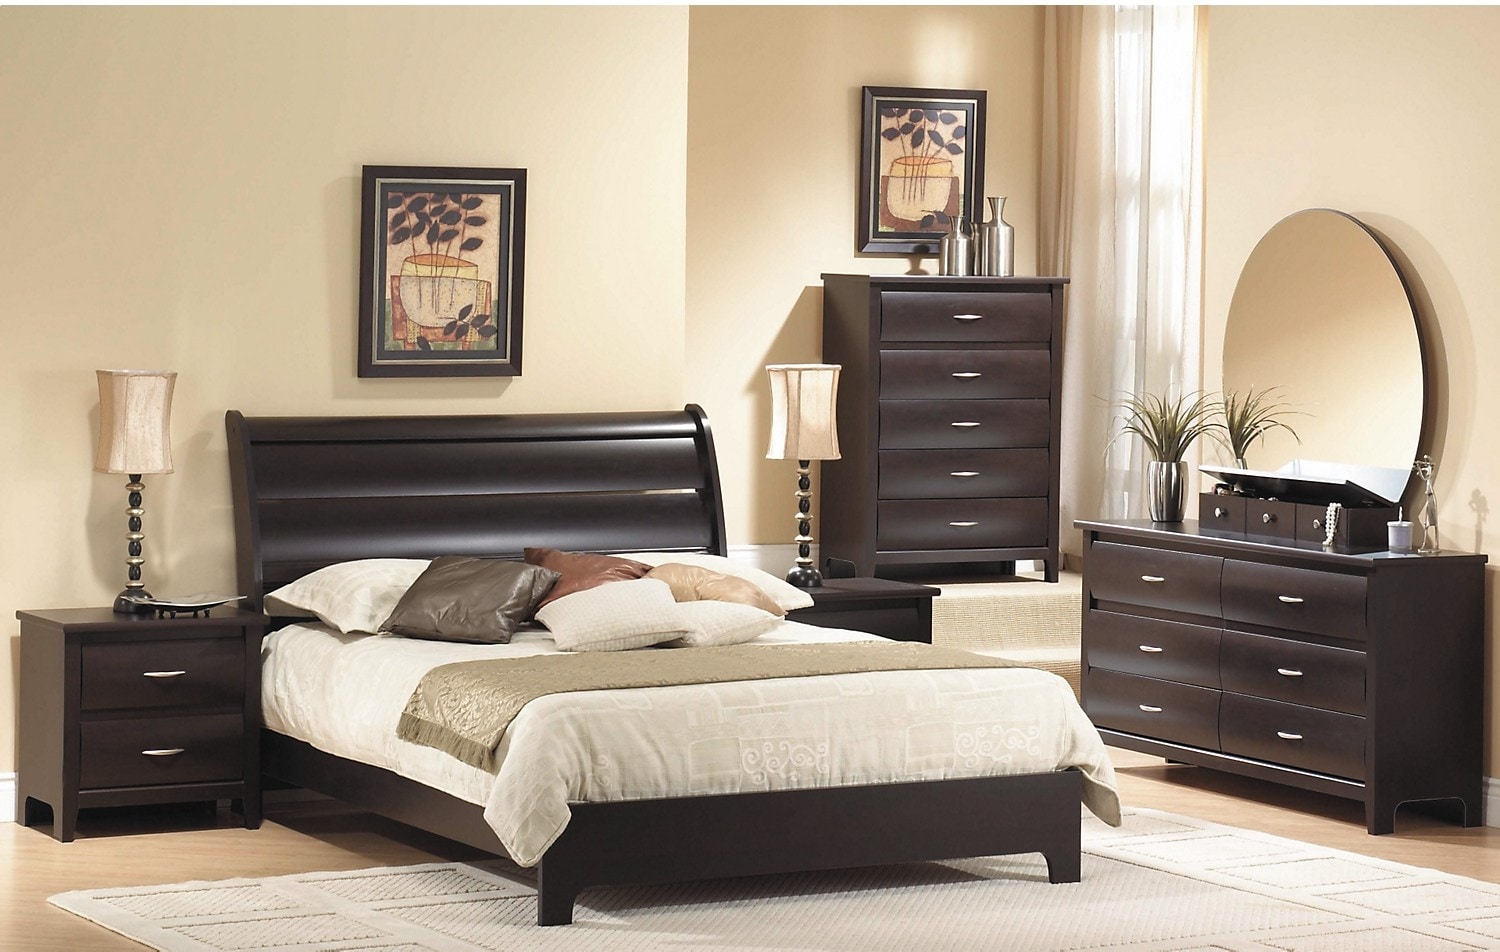 Local Bedroom Furniture Stores Beds The Brick